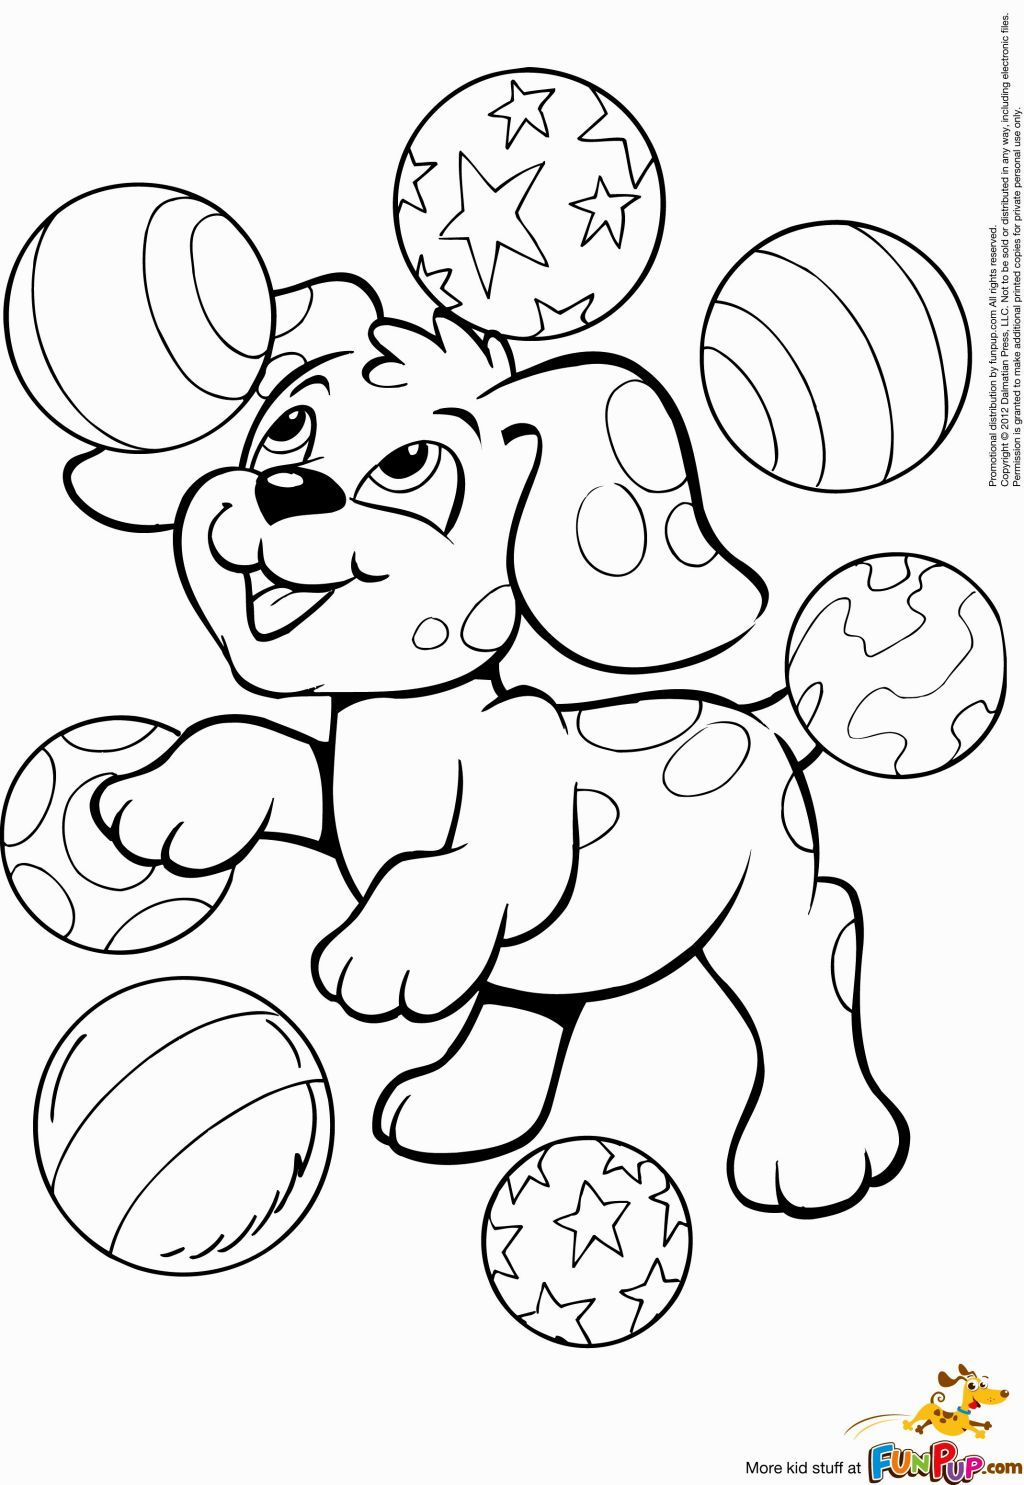 awesome Cute Puppy Free Images Puppy Dog Coloring Page